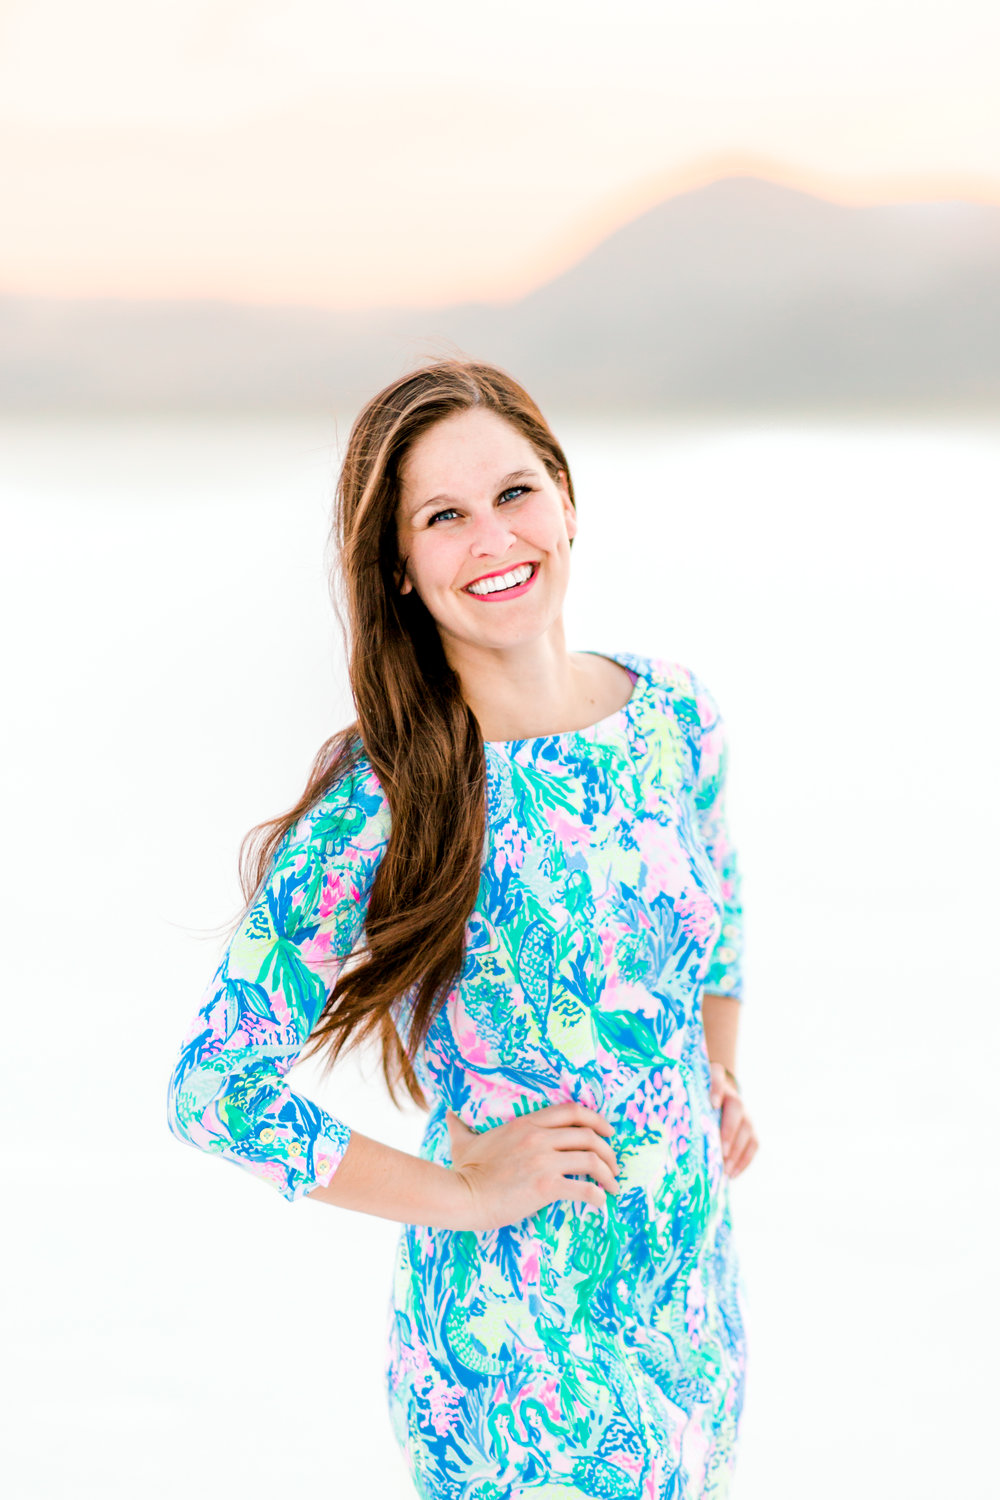 Salt Flats Headshot-1.jpg